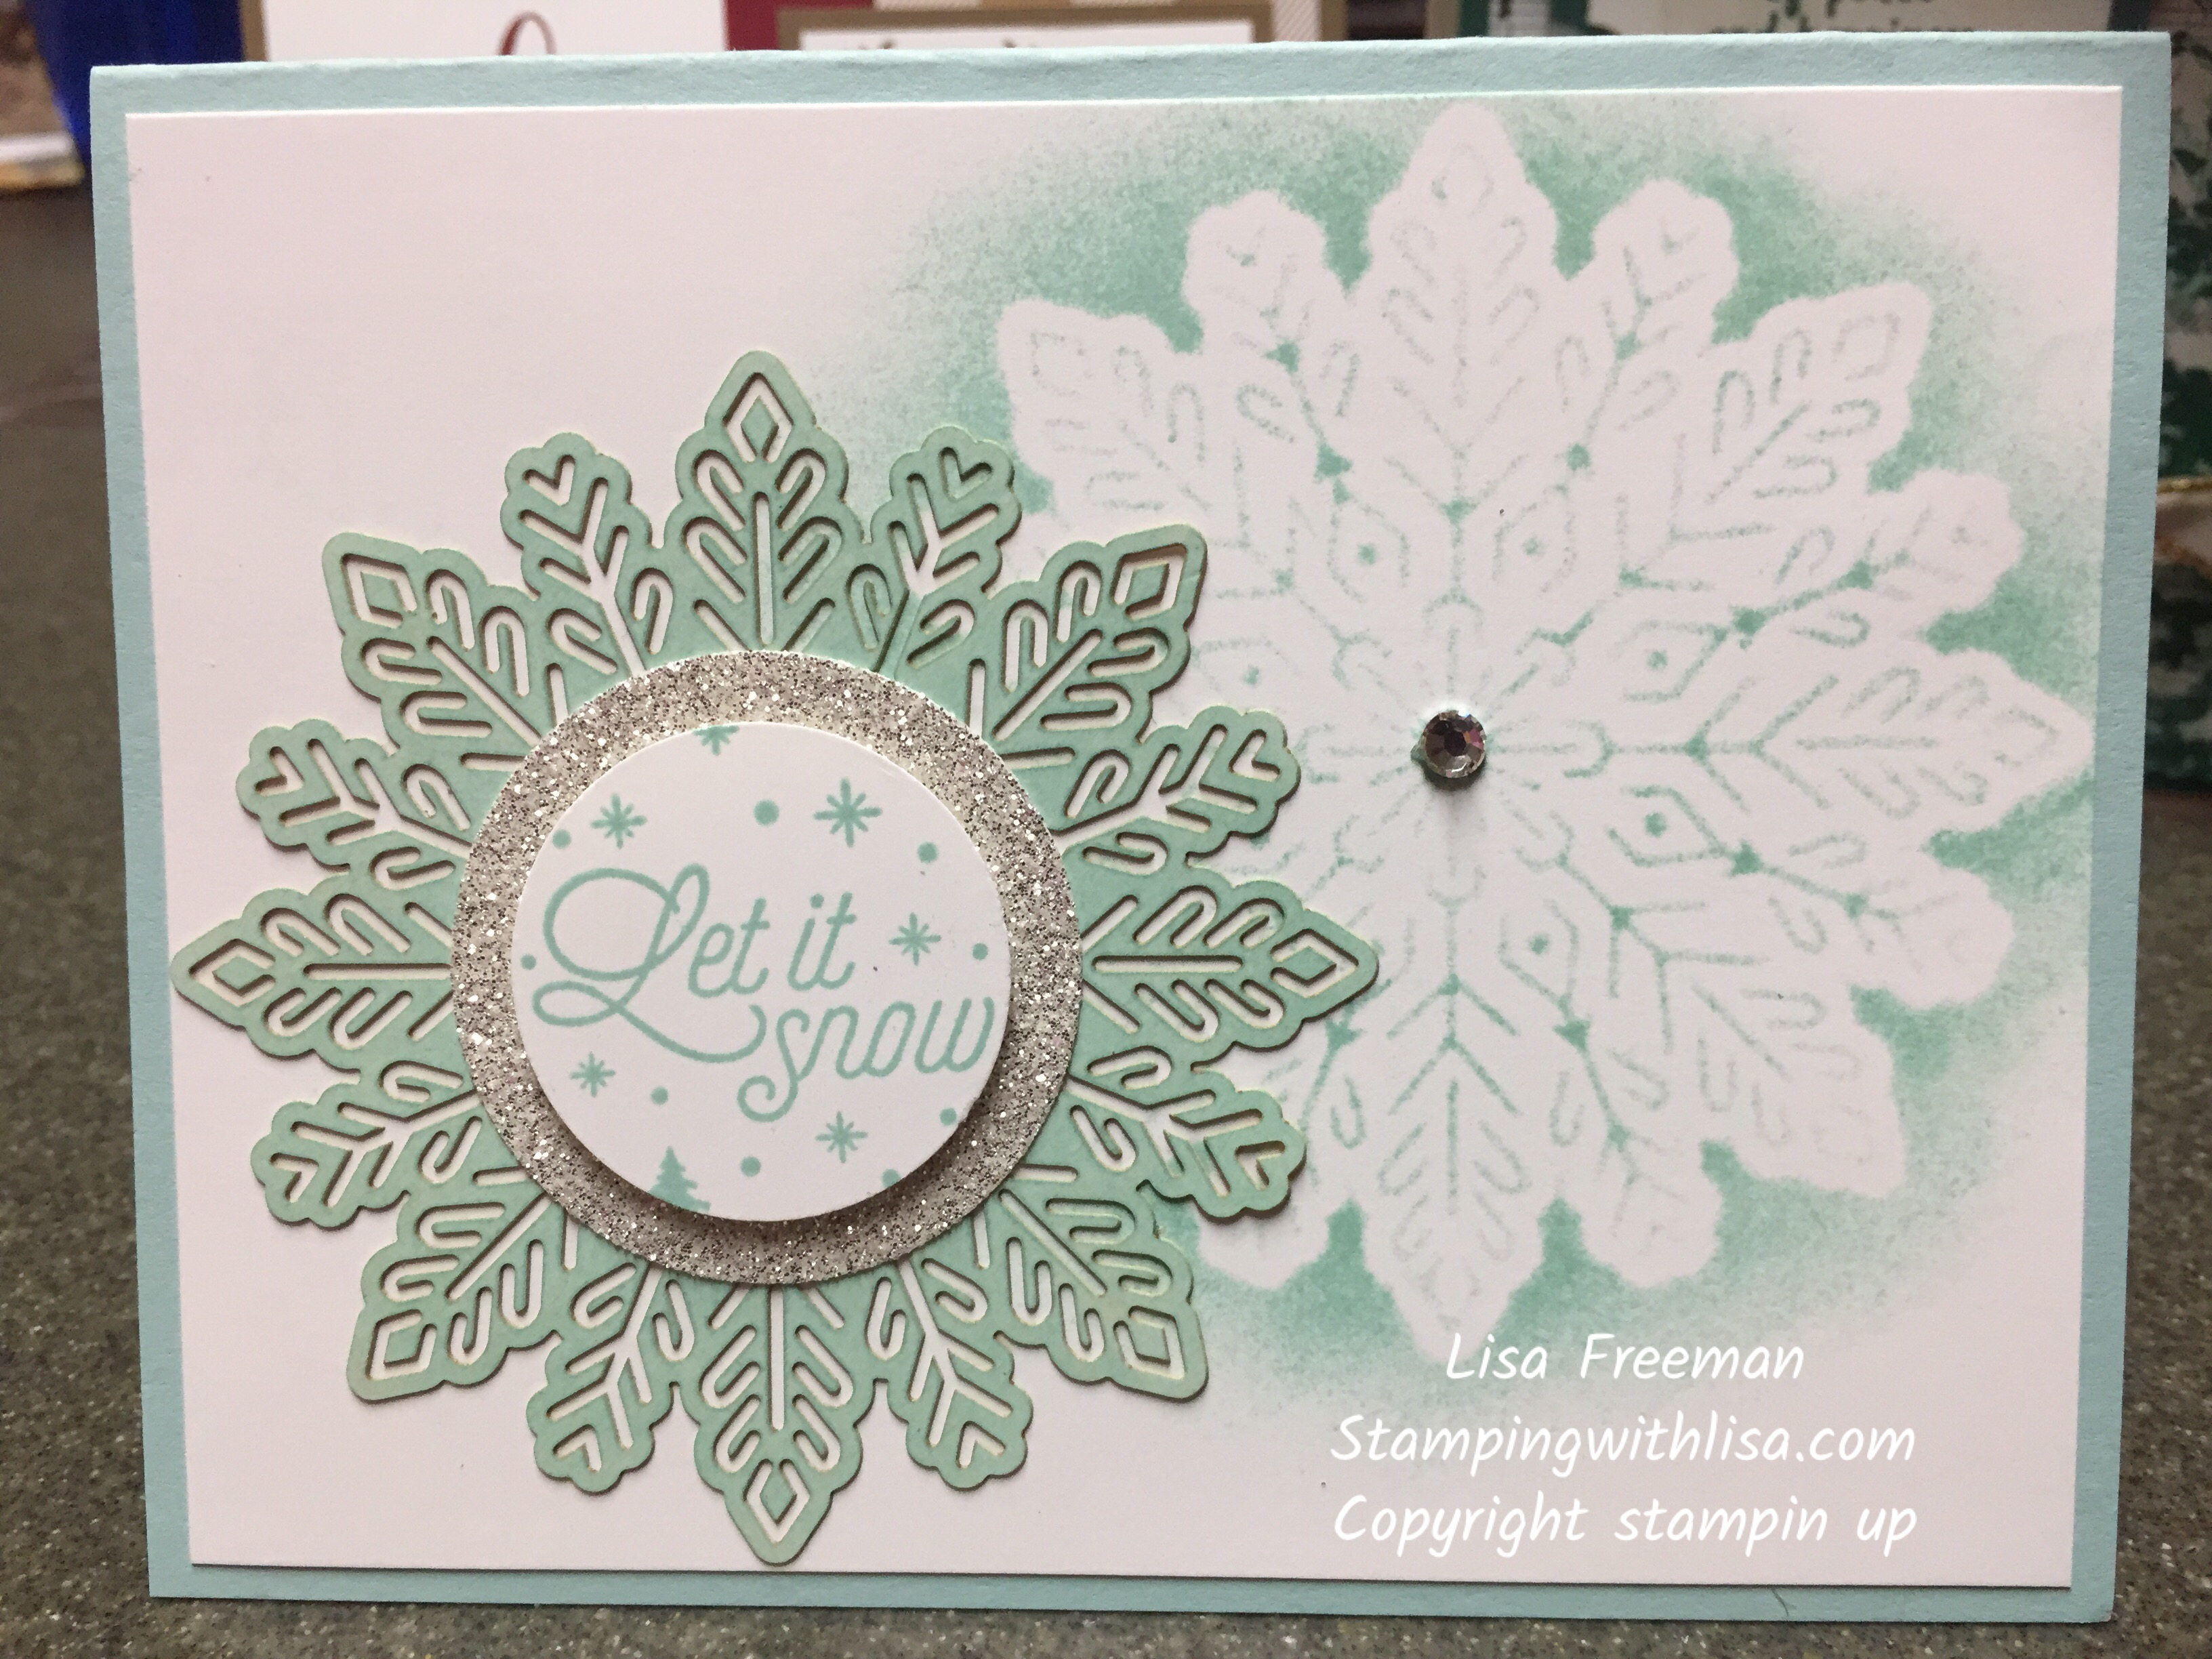 Love the Foil Snowflakes!